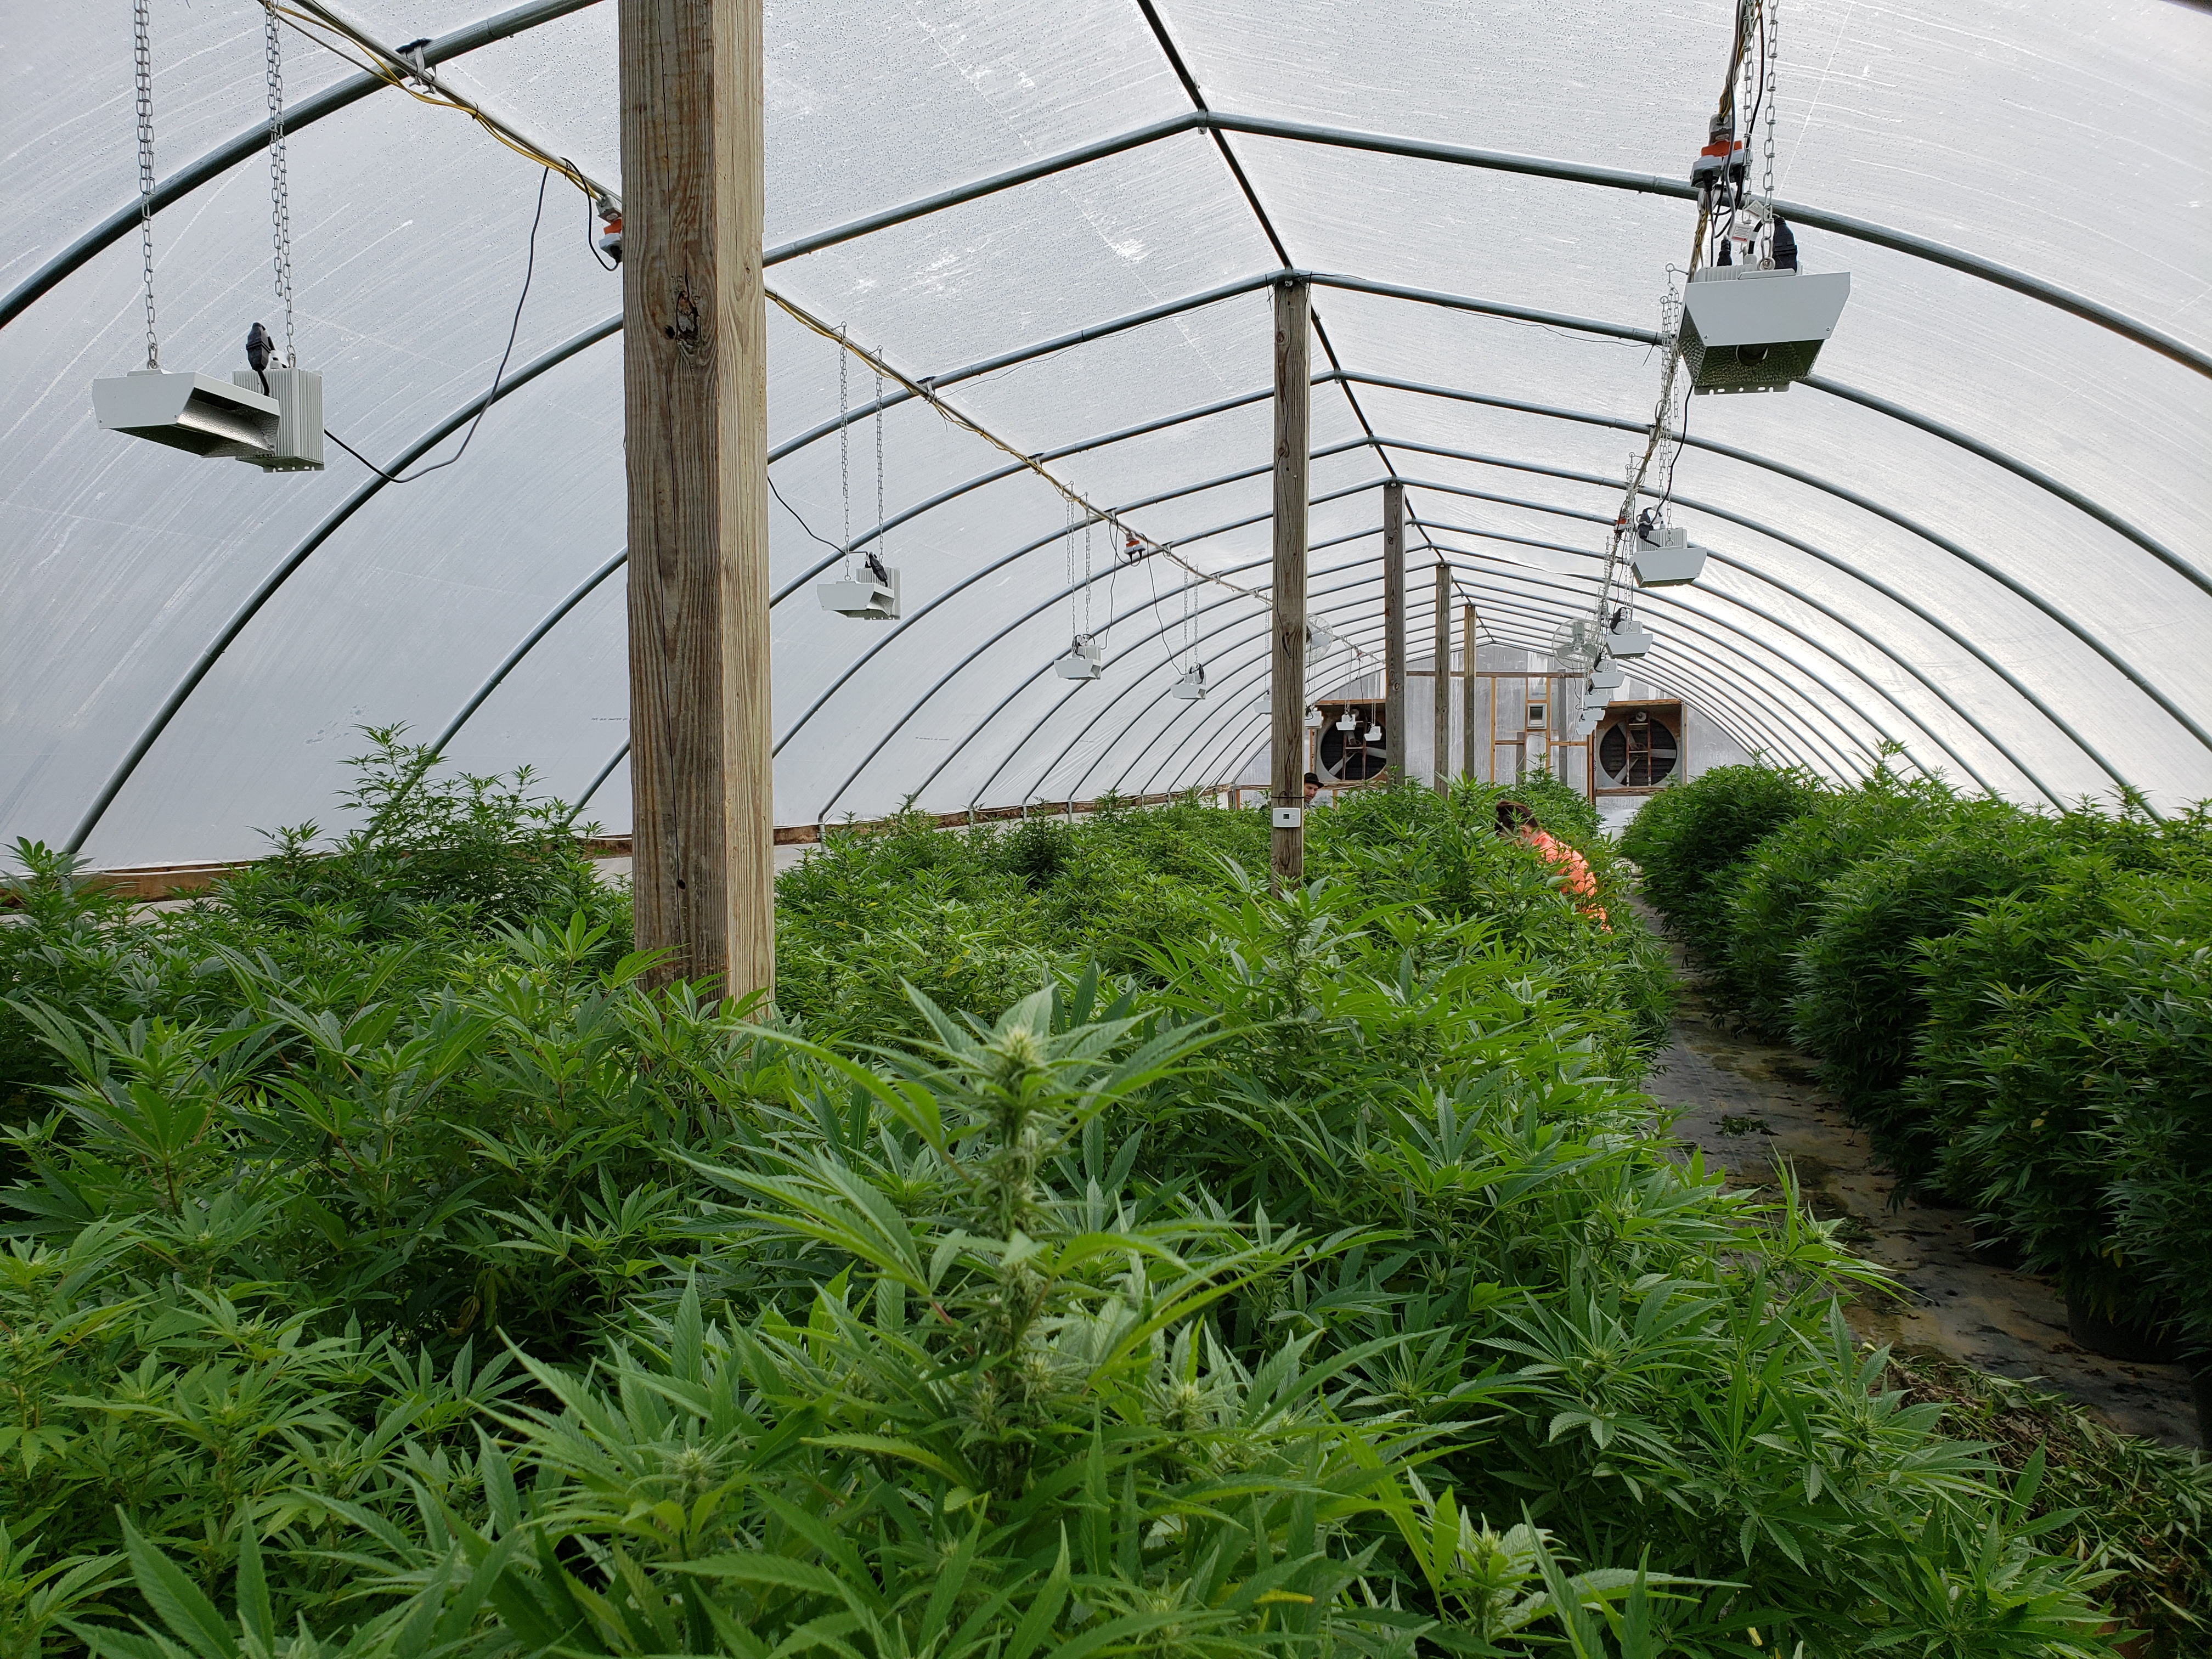 Georgia Submits Revised Industrial Hemp Plan And Rules